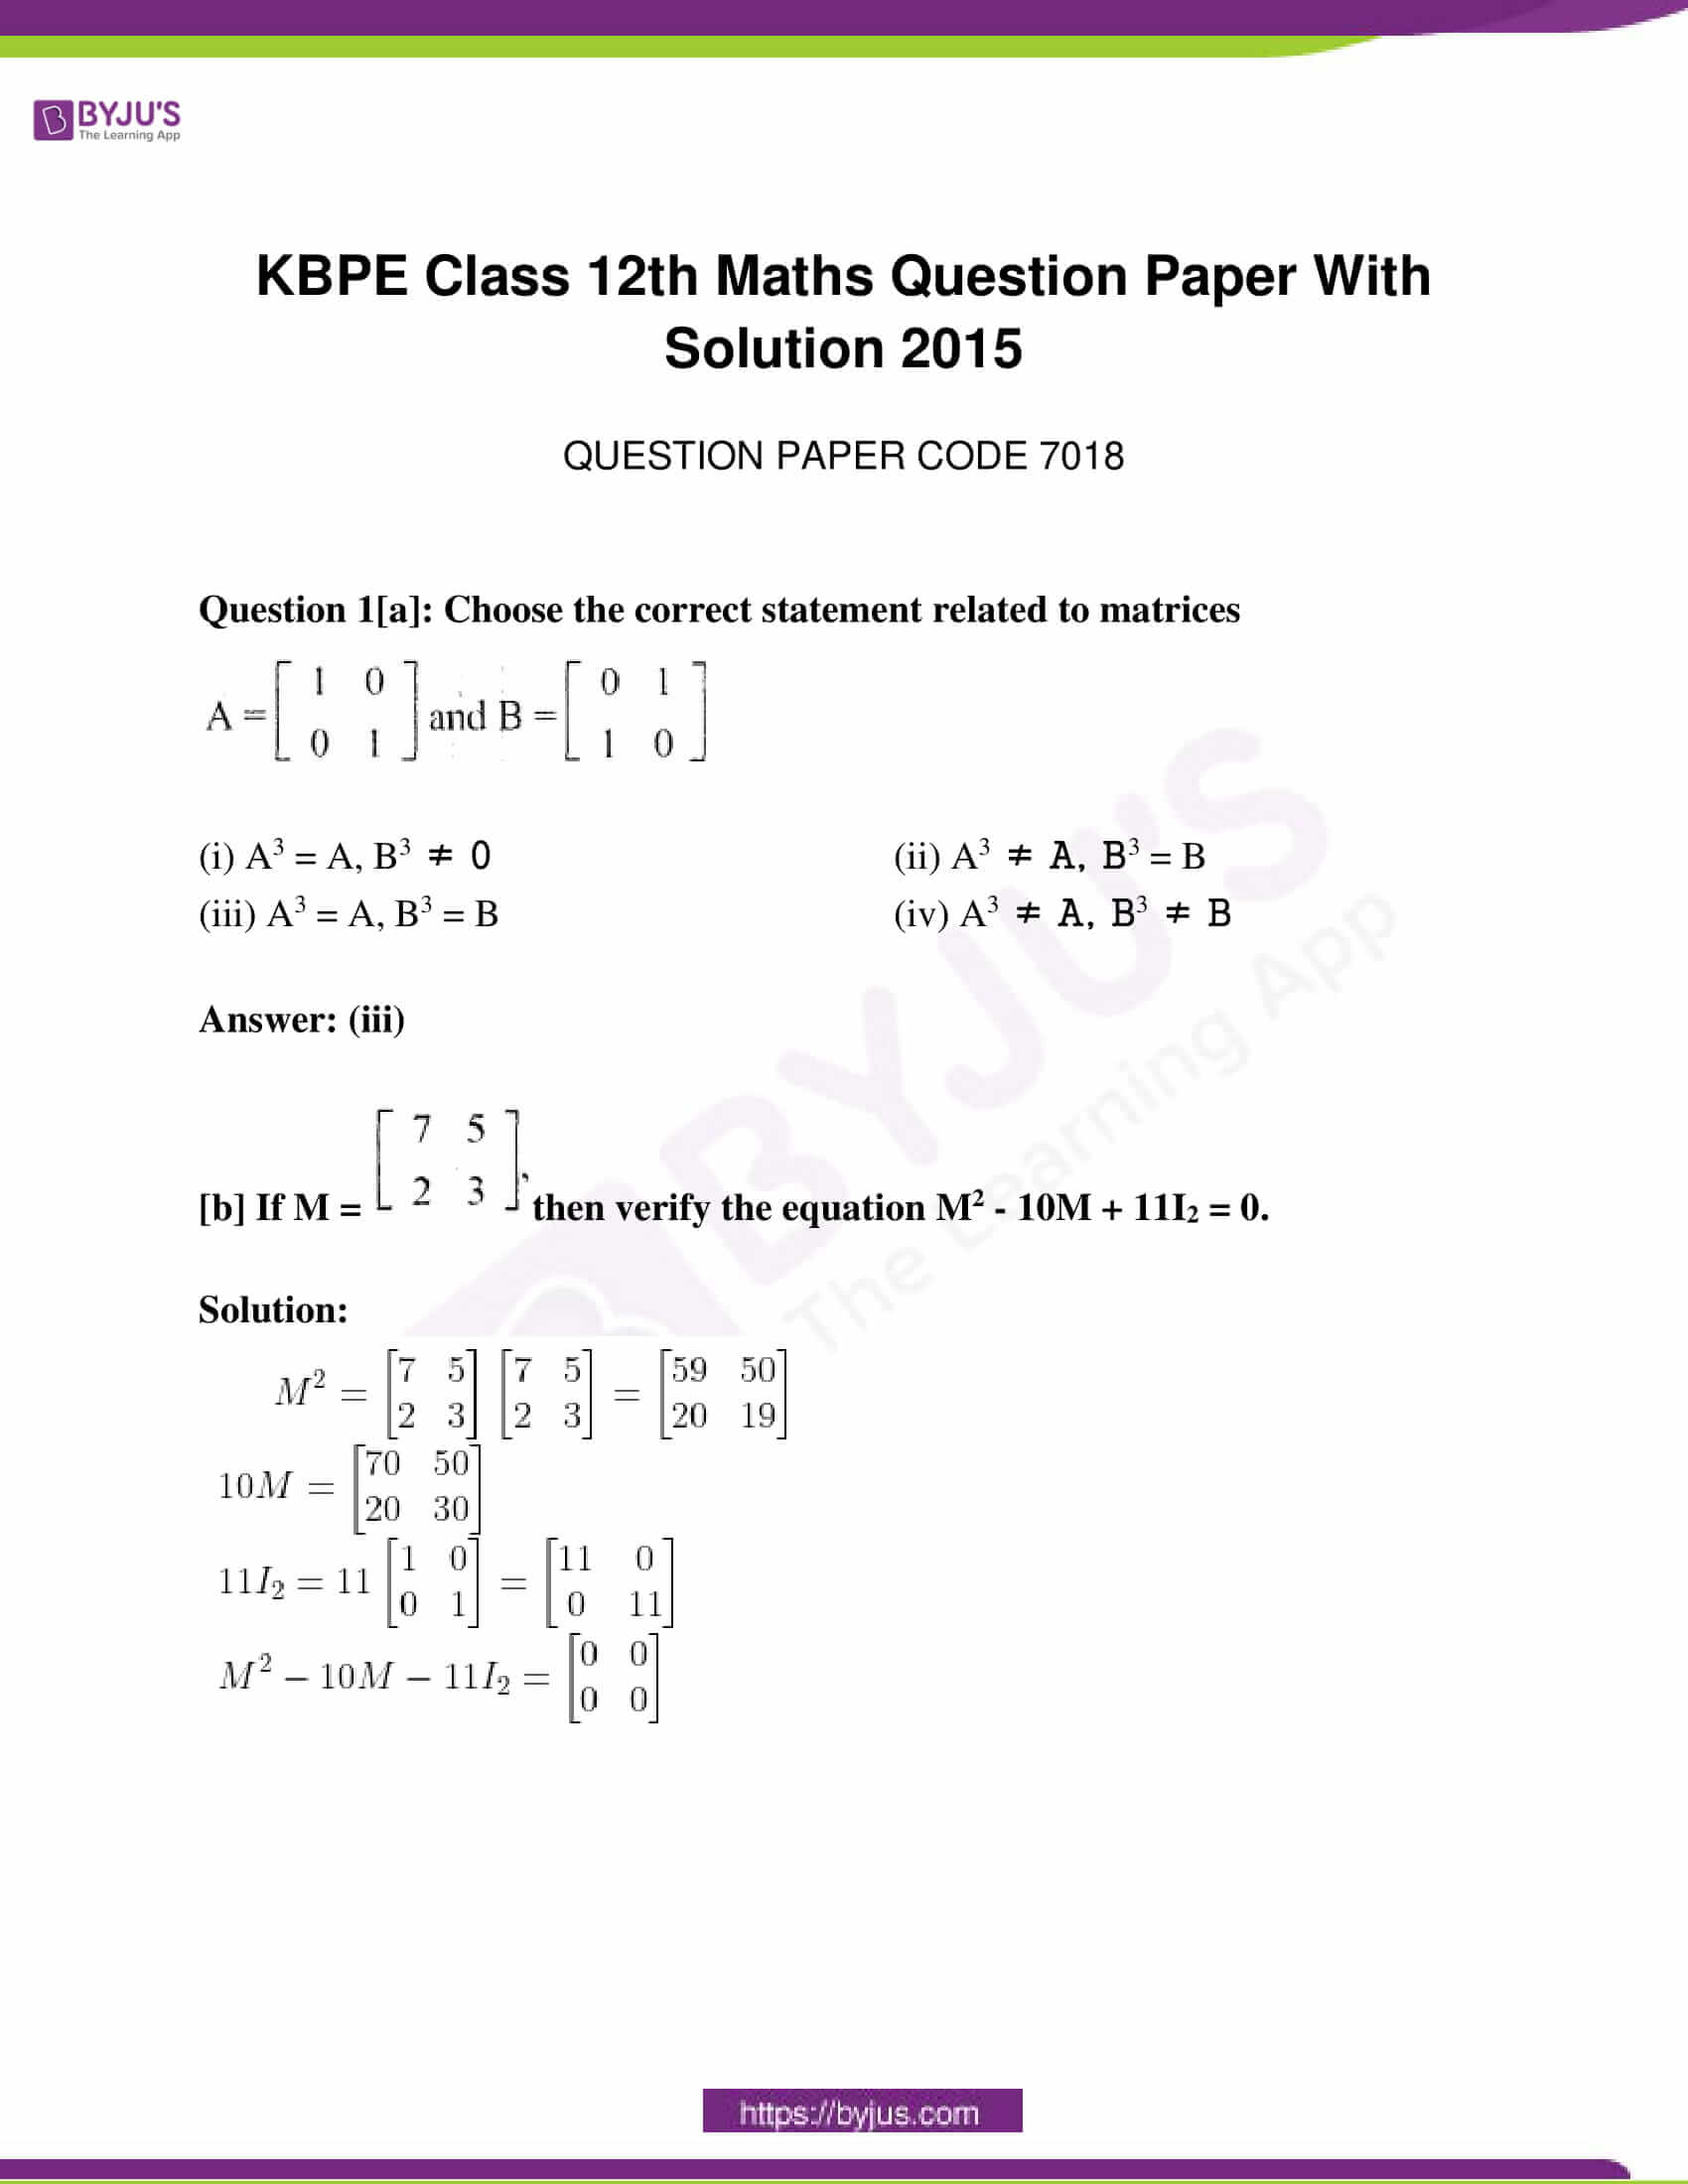 kerala class 12 examination question paper solutions march 2015 01